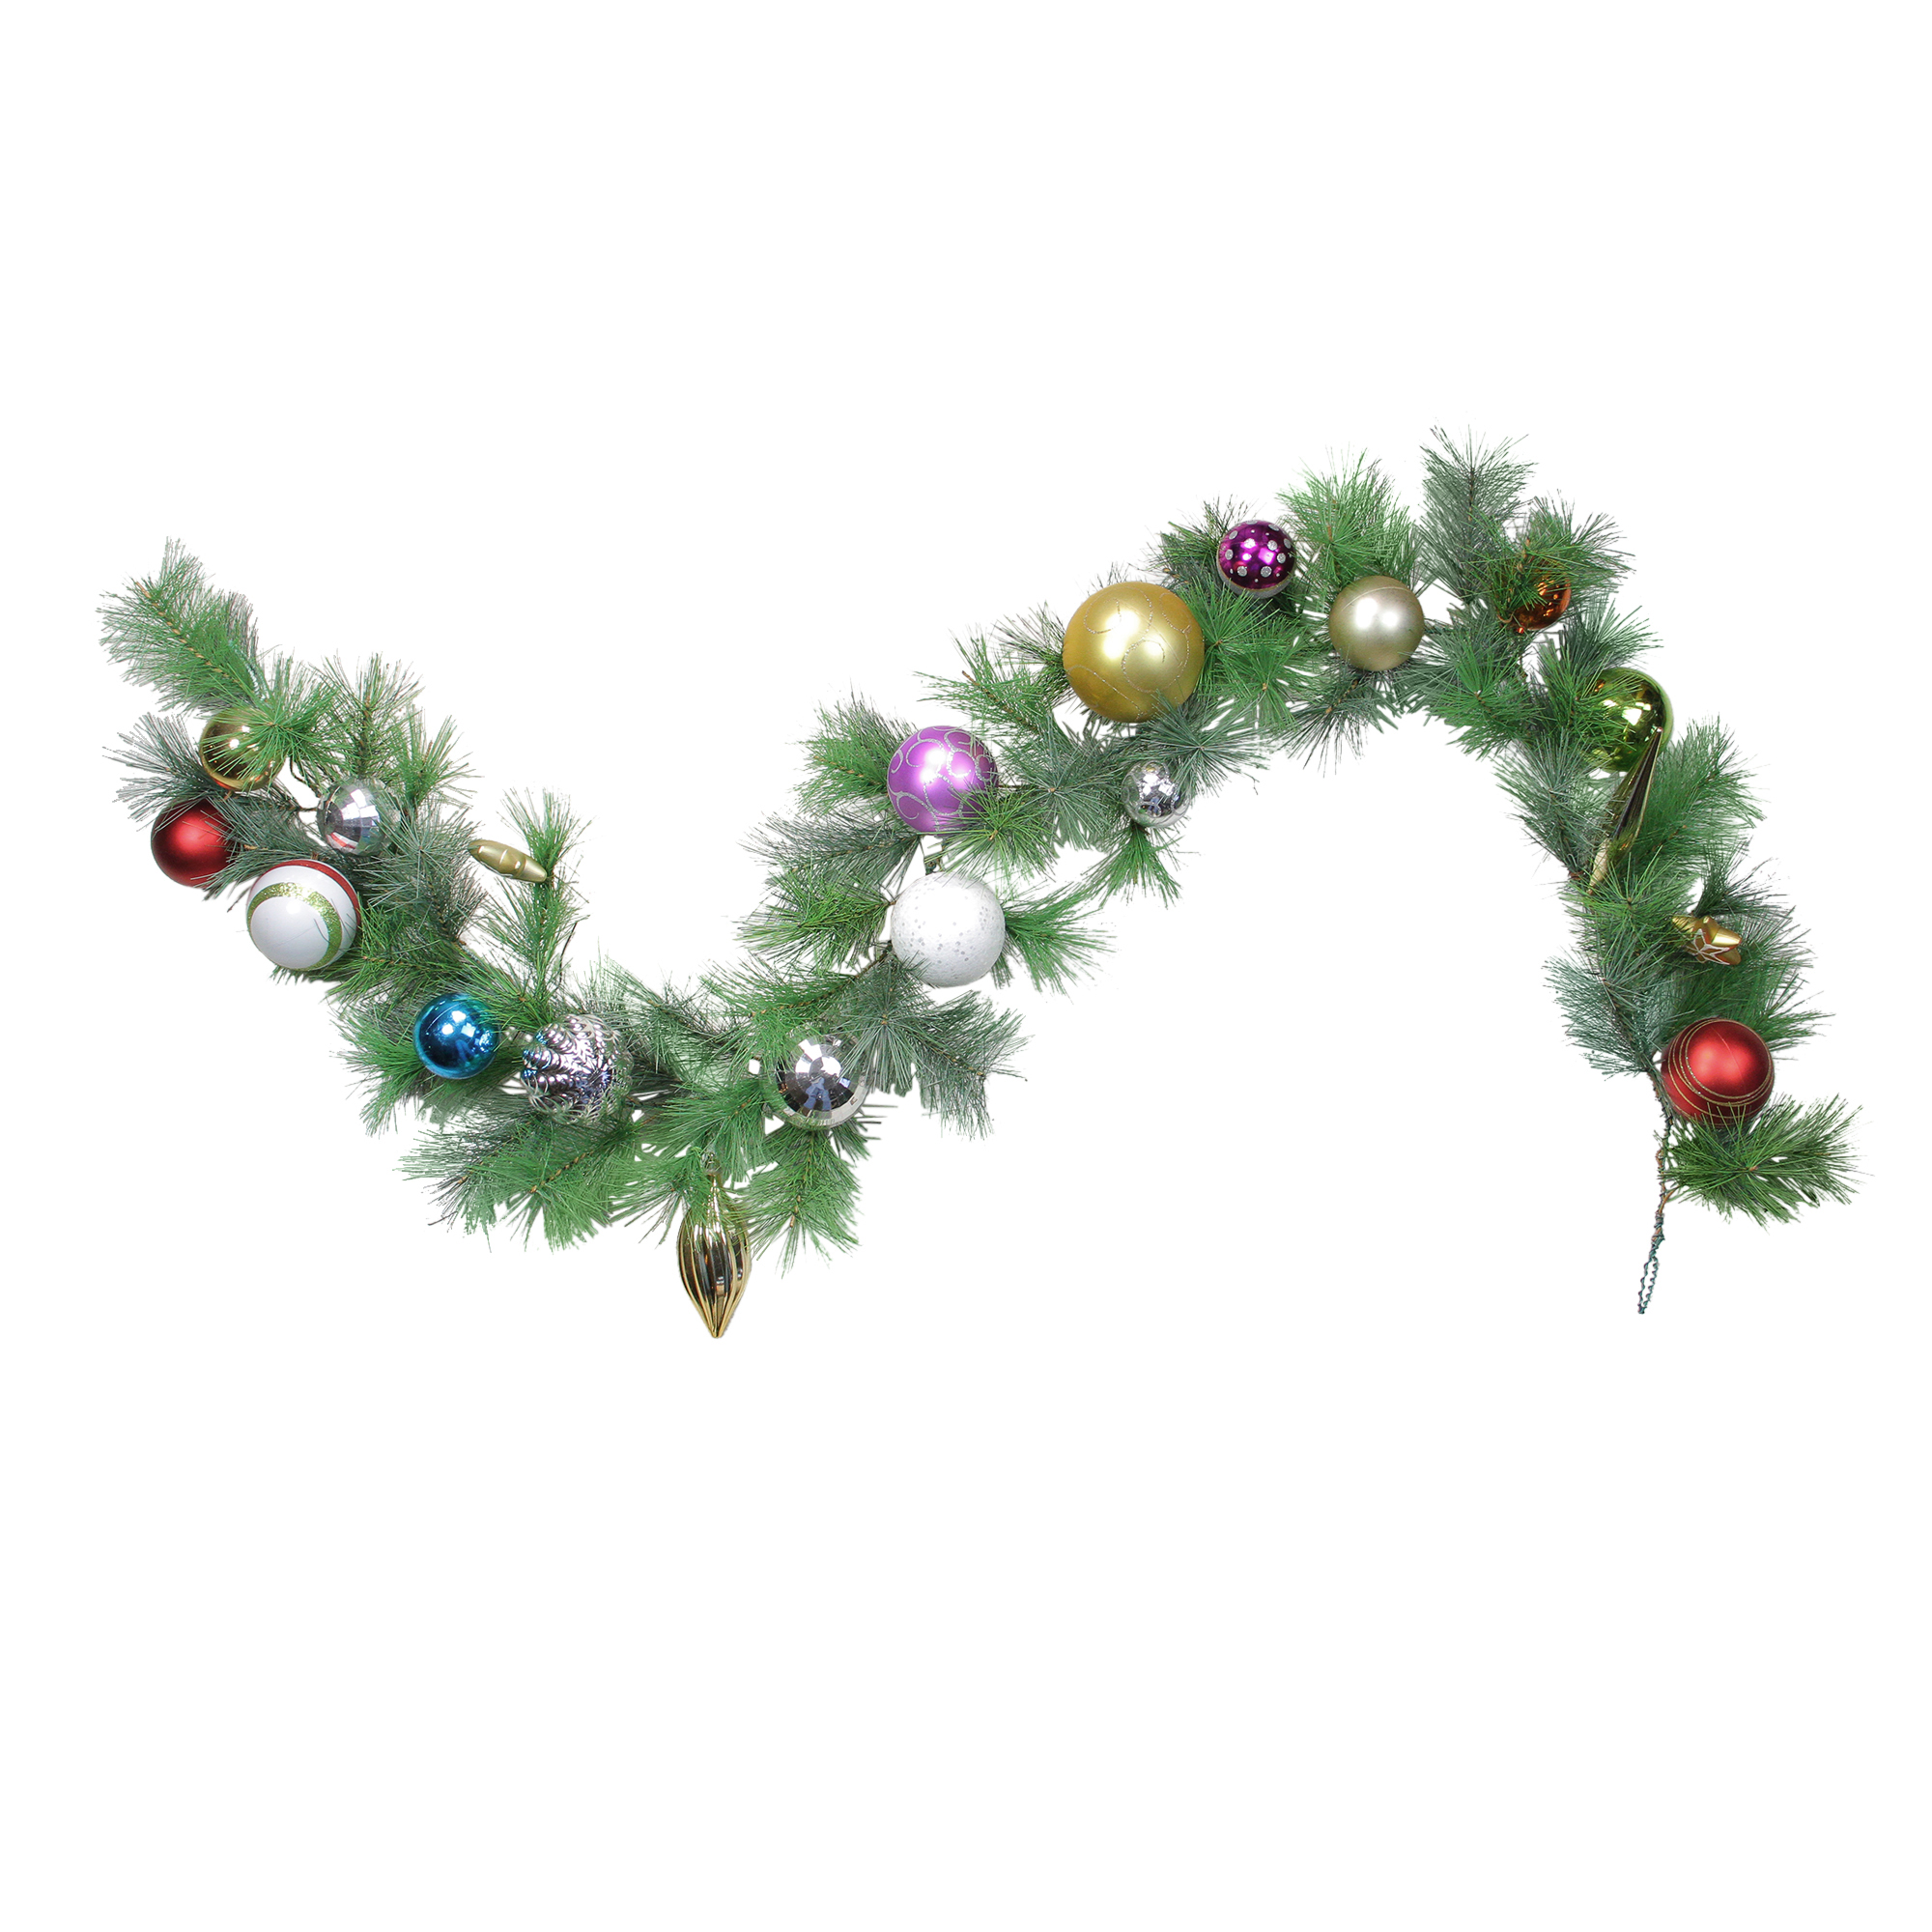 NorthLight 6' Pre-Decorated Multi-Color Ball Ornament Long Needle Pine Artificial Christmas Garland - Unlit